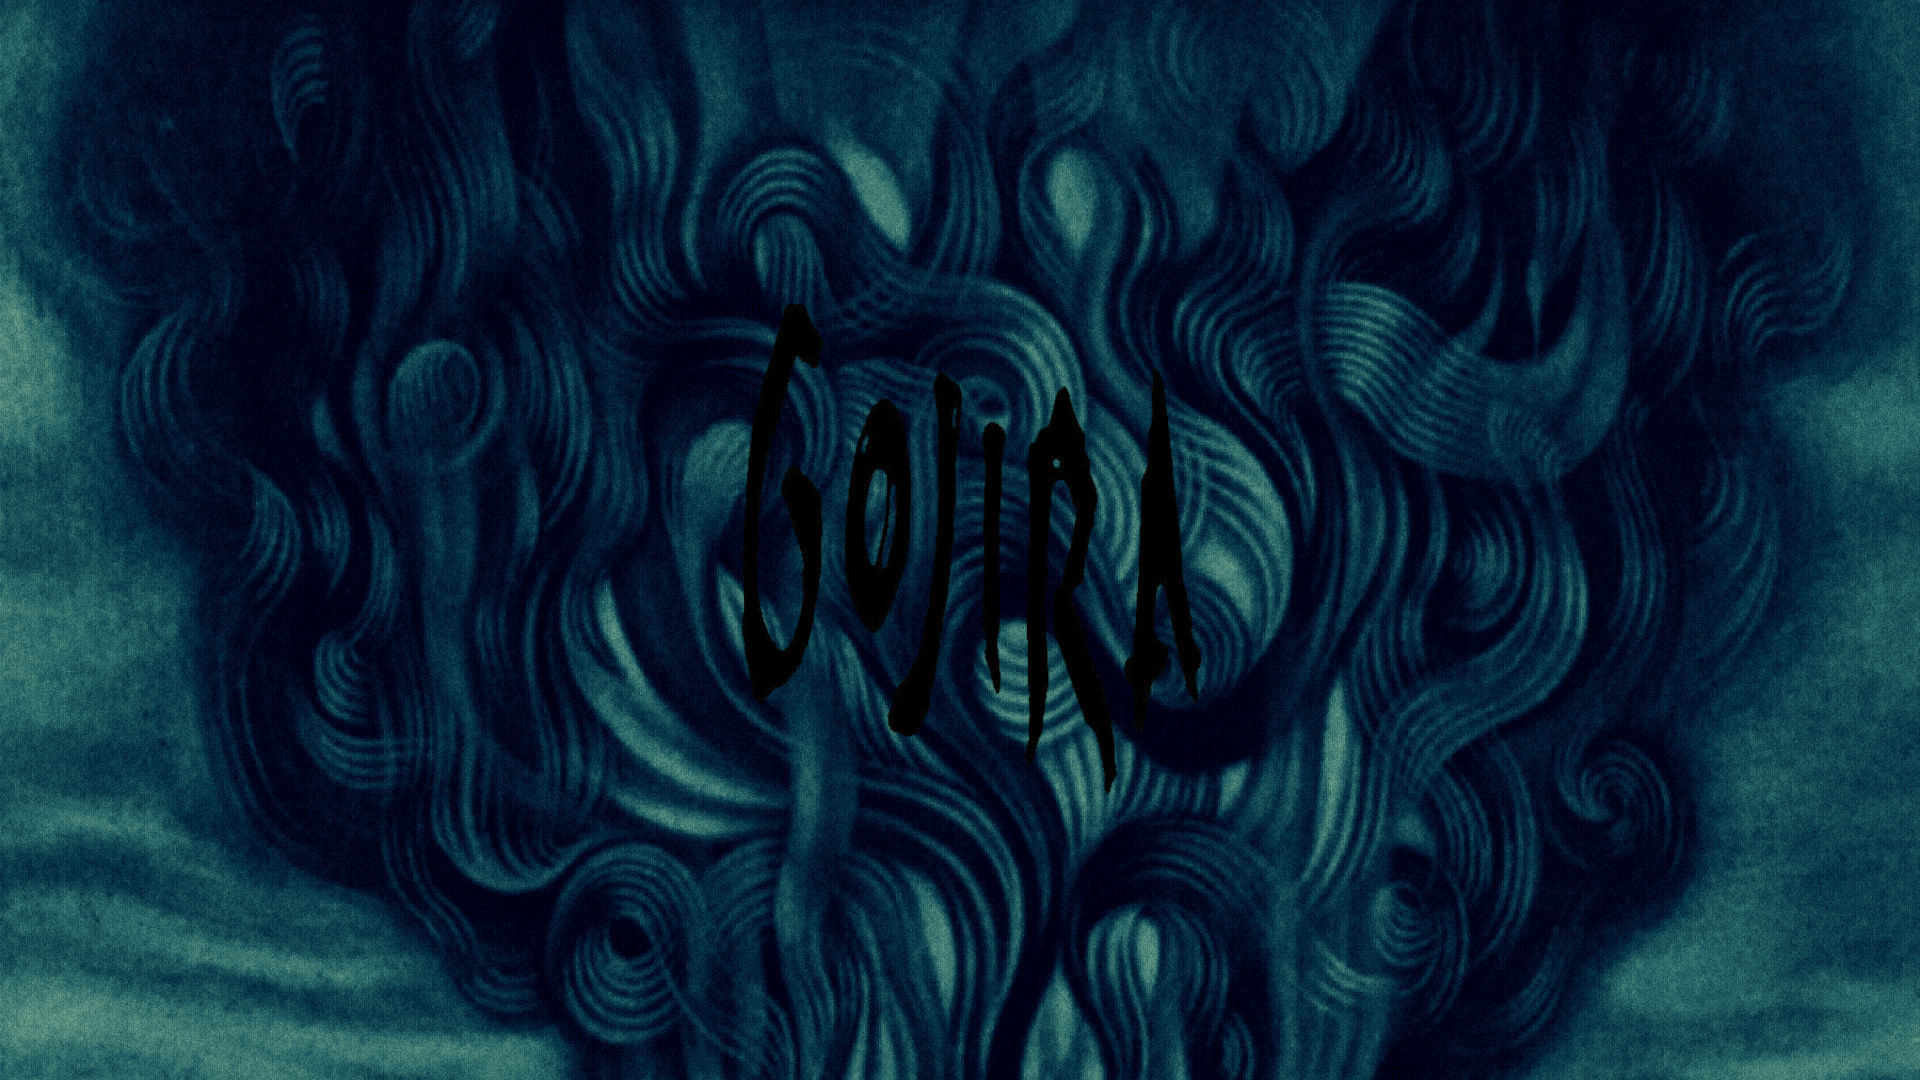 Gojira Wallpapers and Background Images   stmednet 1920x1080